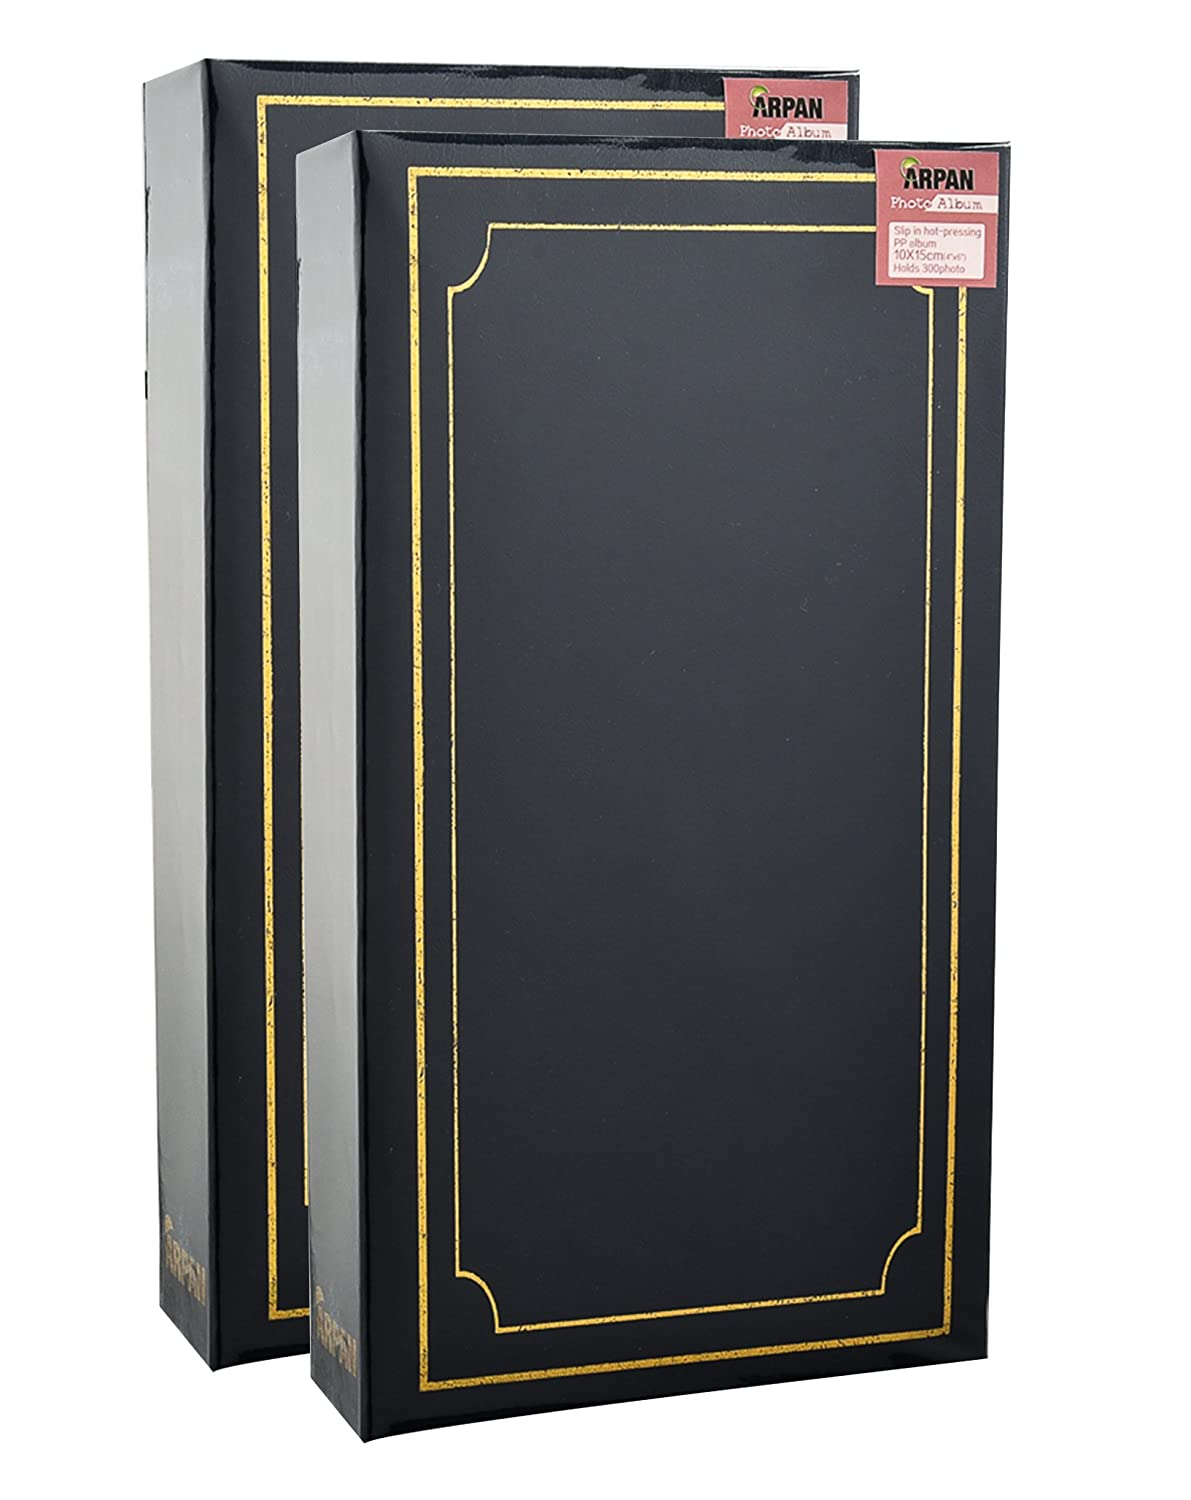 ARPAN Large Slip Album Holds 500 Photos 6/'/' x 4/'/' Gold Stamp Padded Cover...